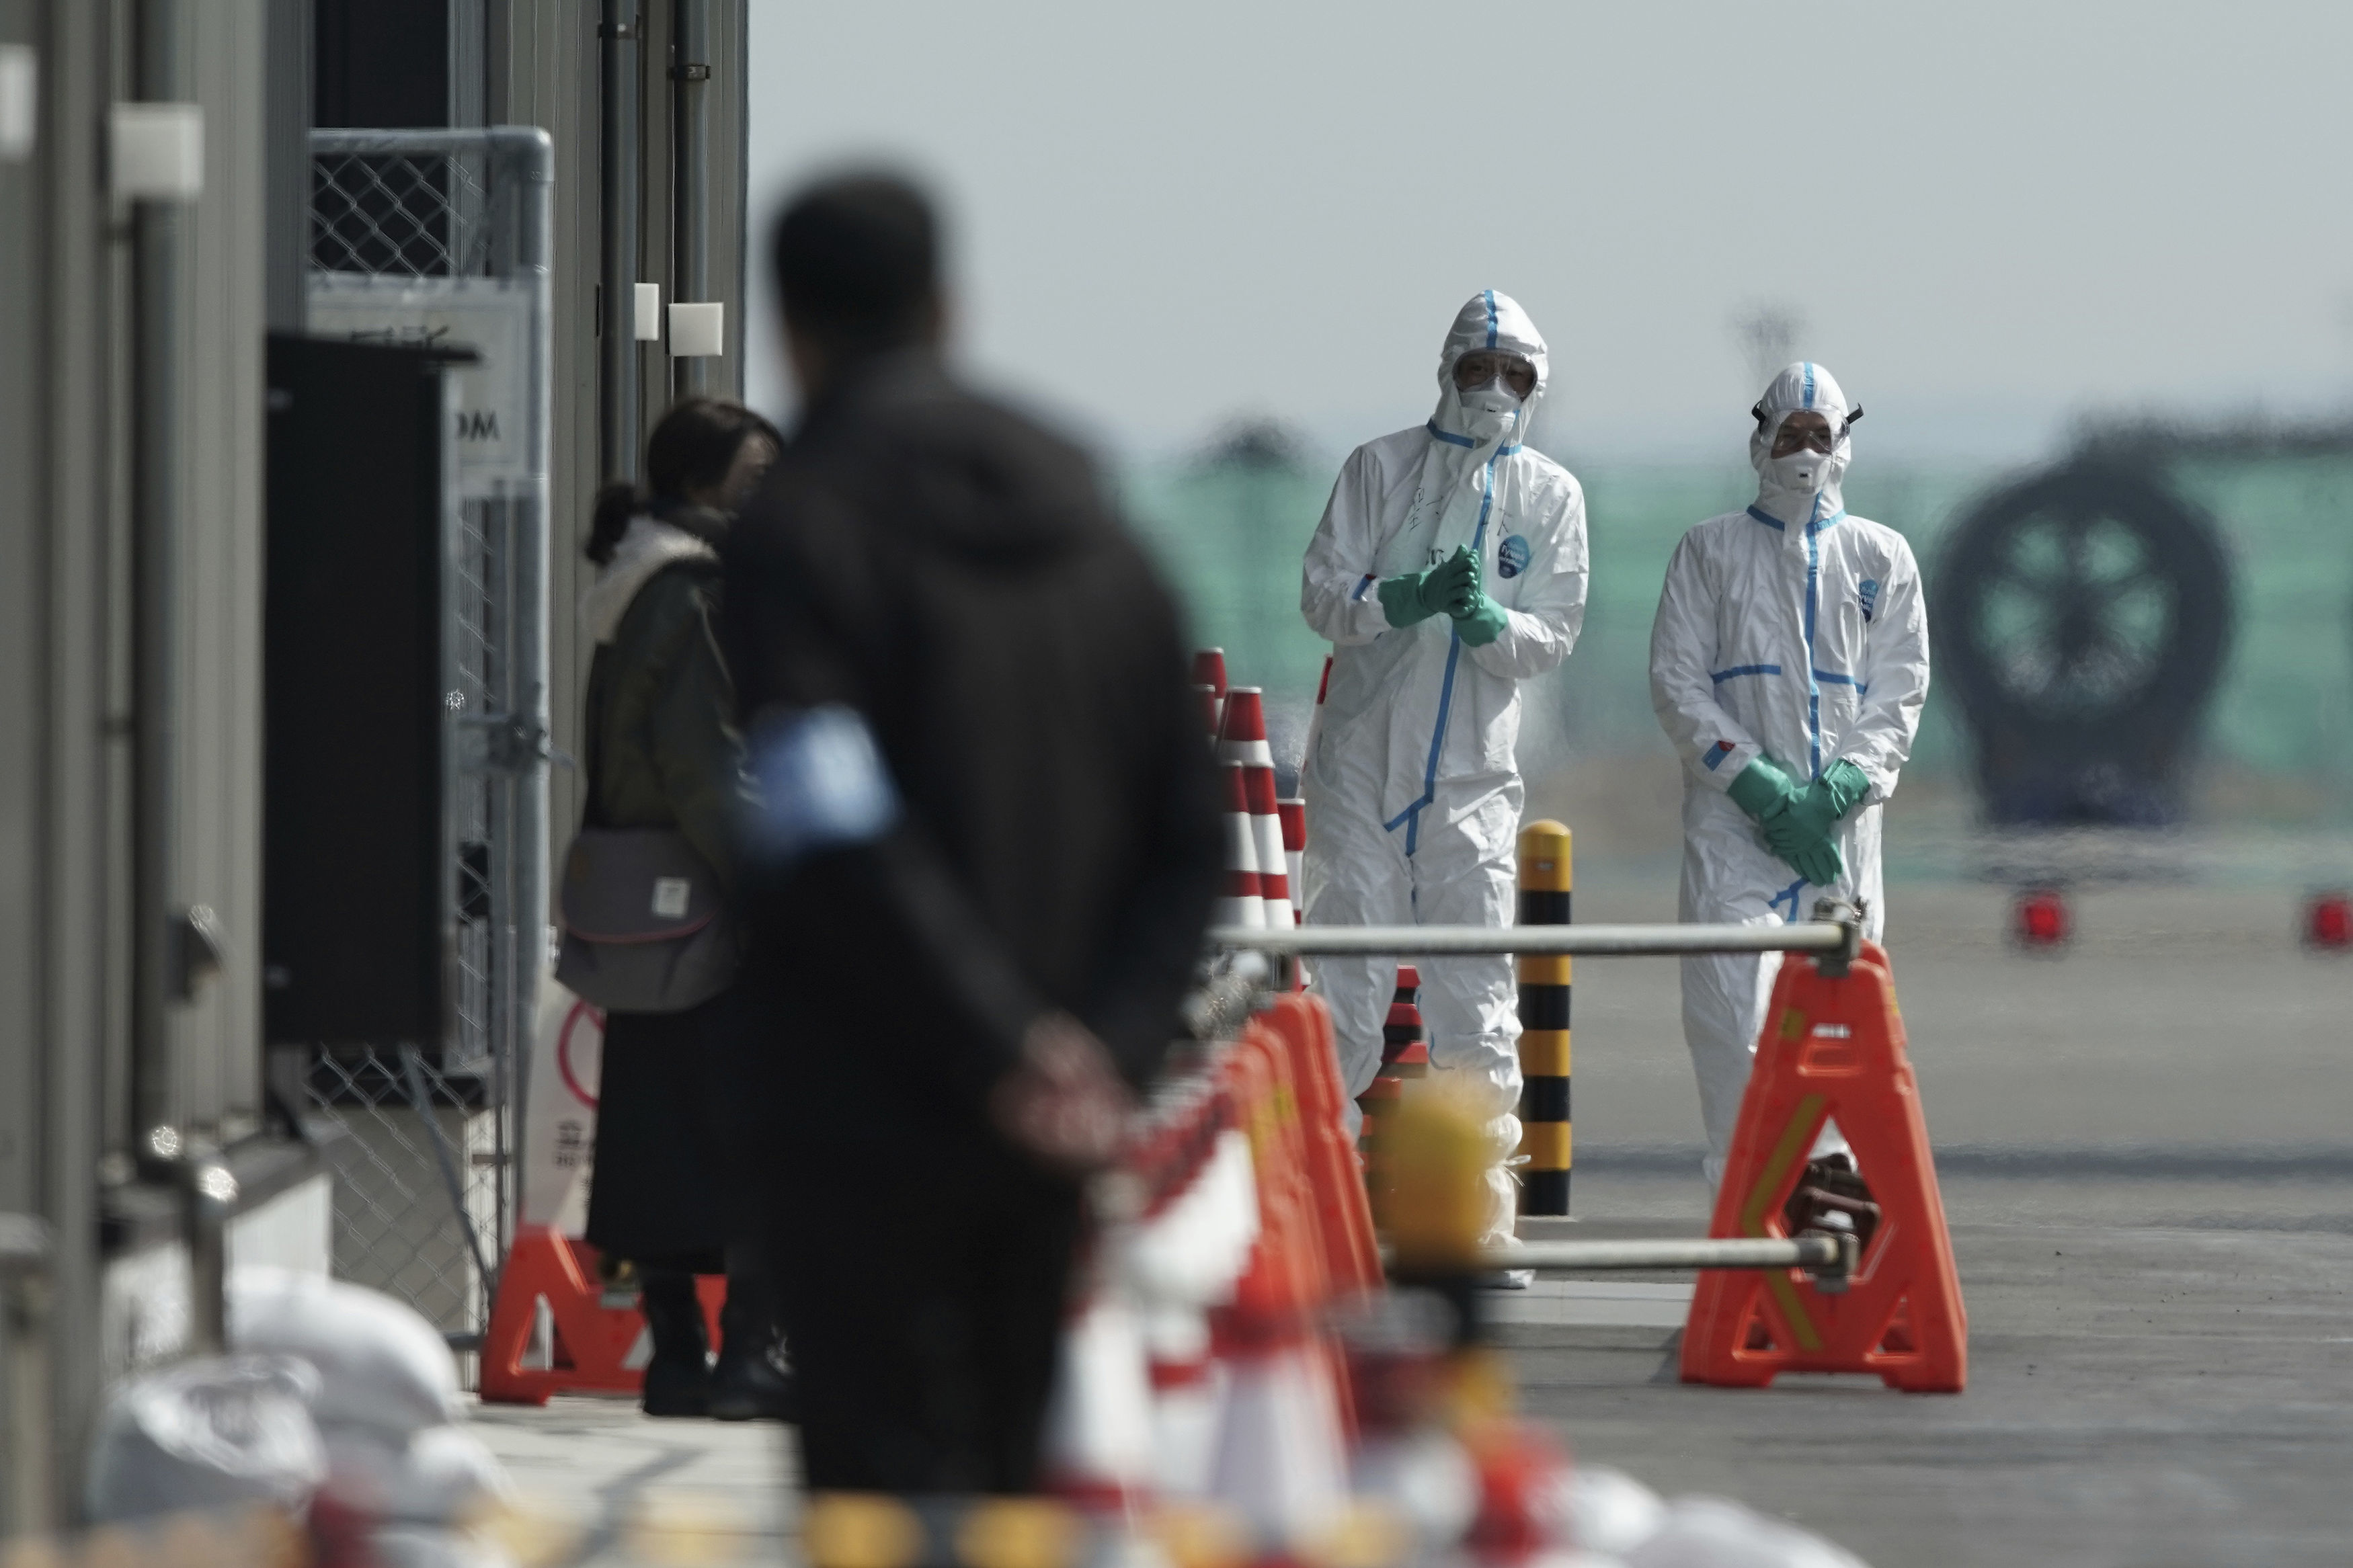 Officials in protective suits talk